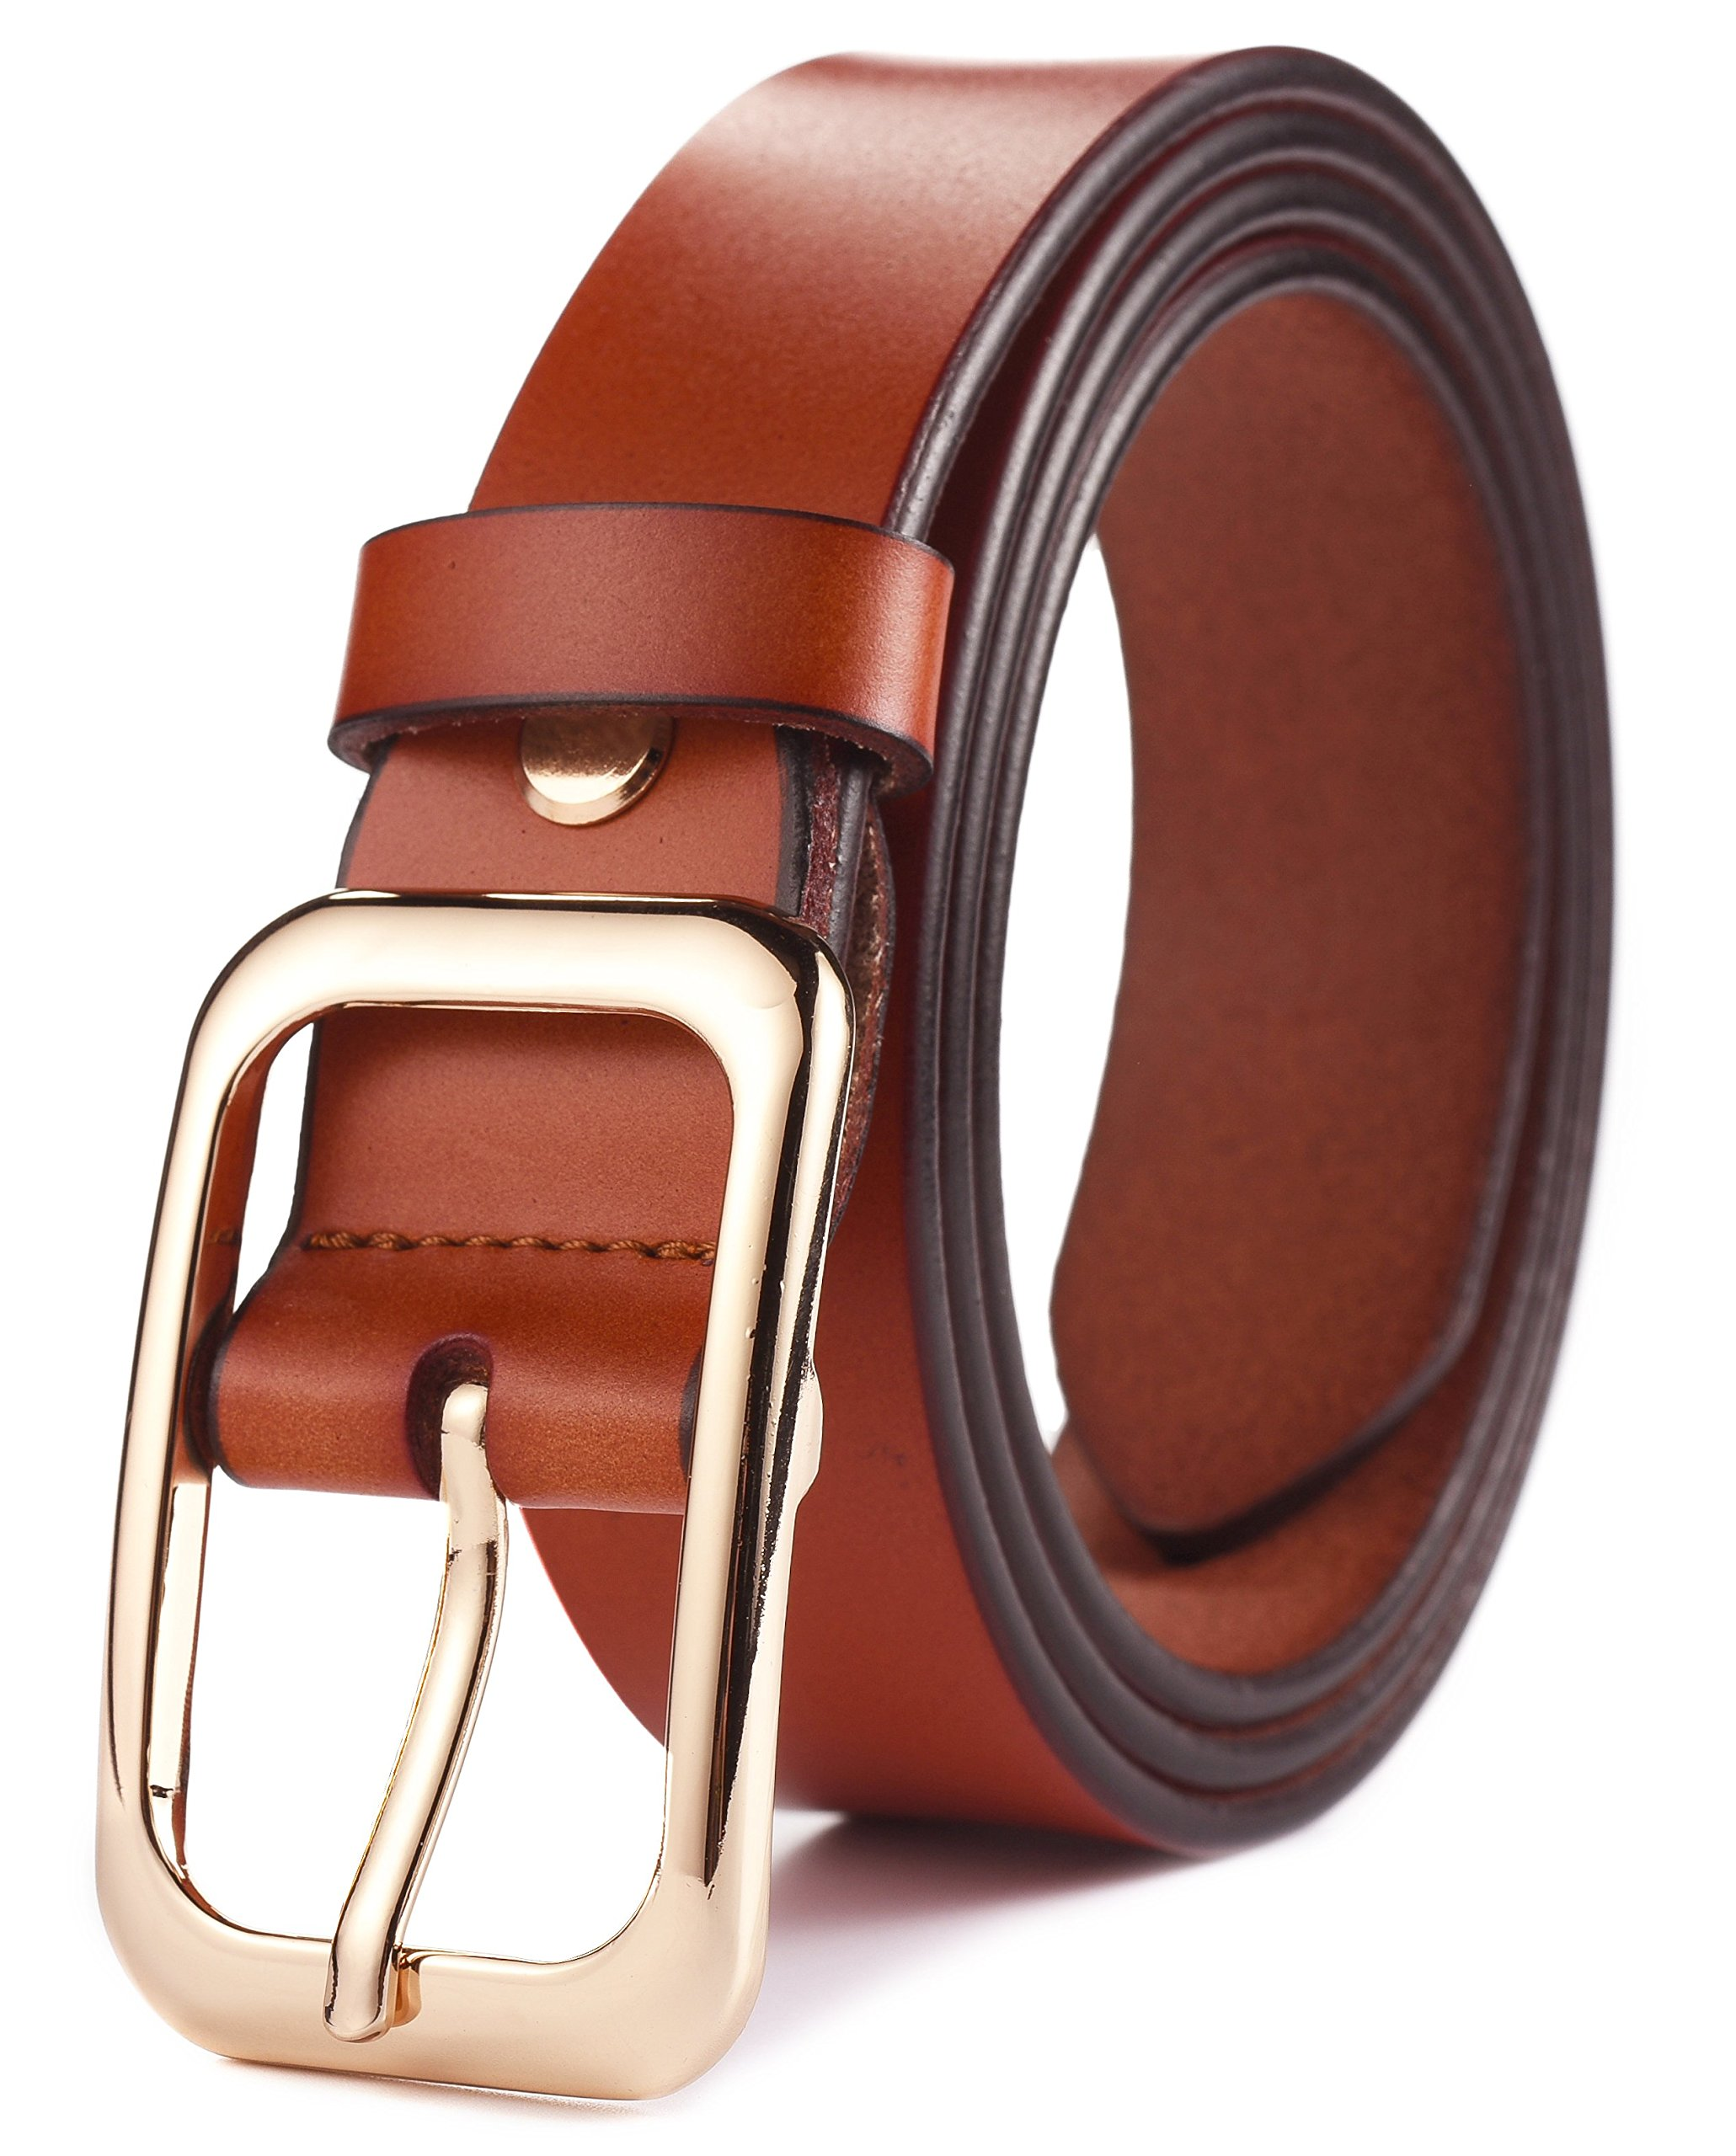 Ayli Women's Jean Belt, Gold Color Classic Buckle Genuine Leather Belt, Free Gift Box, Brown, Fits Waist 28'' to 29'' (US Pant Size 6-8), bt6b503br095